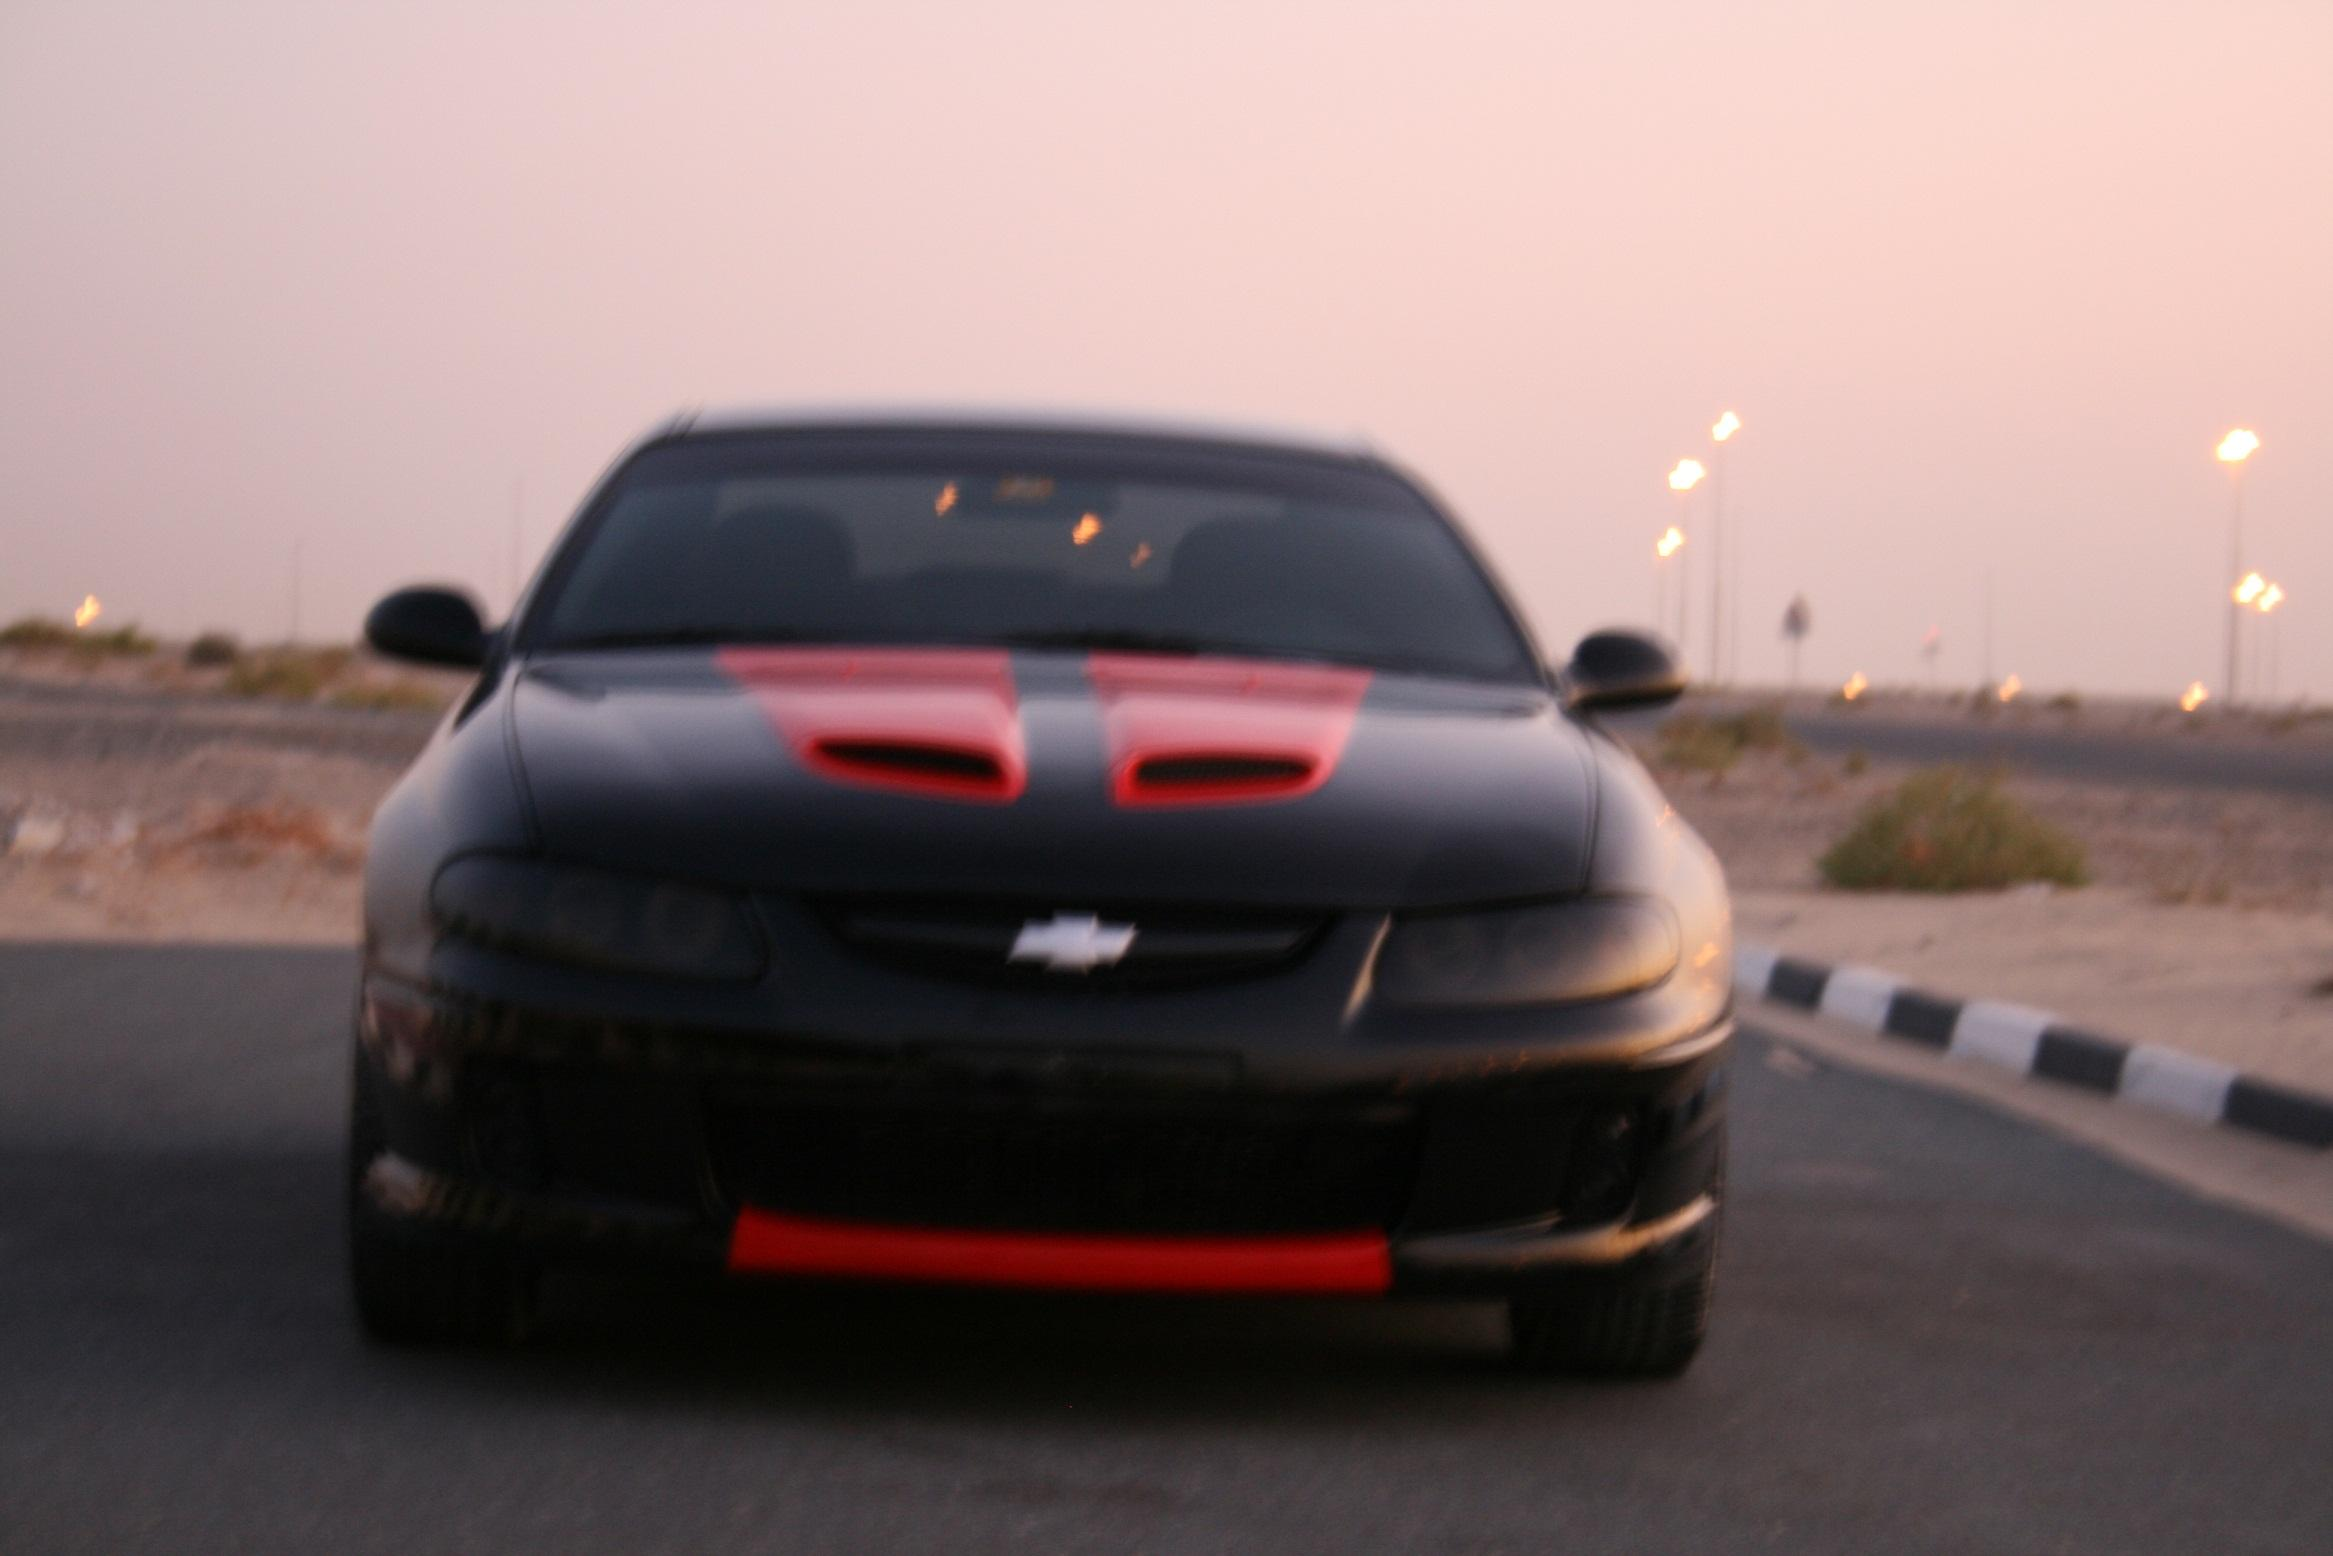 lumina911 39 s 2004 pontiac gto coupe 2d in dubai. Black Bedroom Furniture Sets. Home Design Ideas